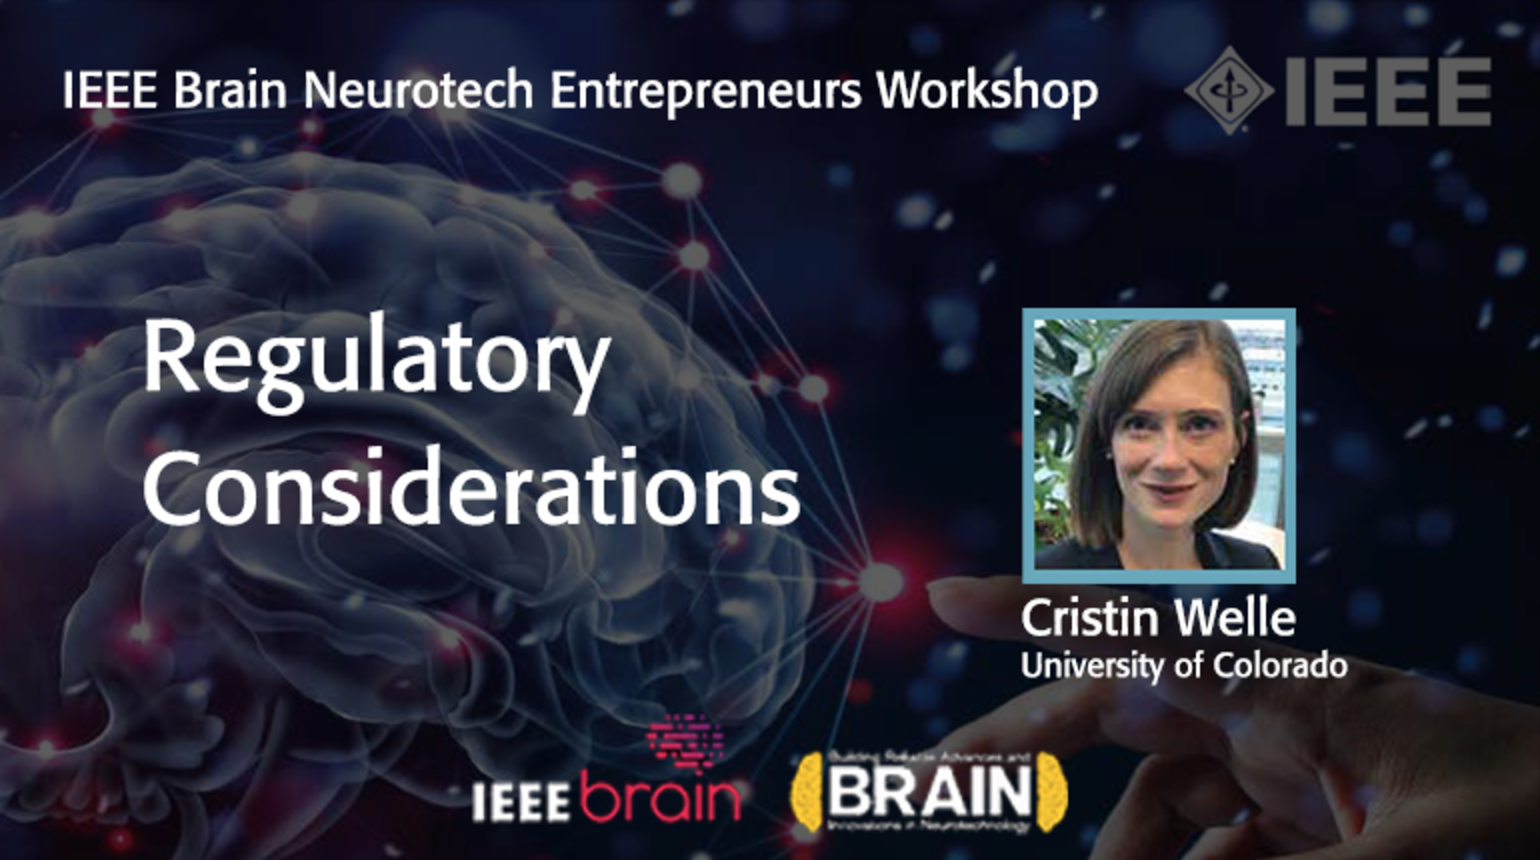 IEEE Brain: Regulatory Considerations